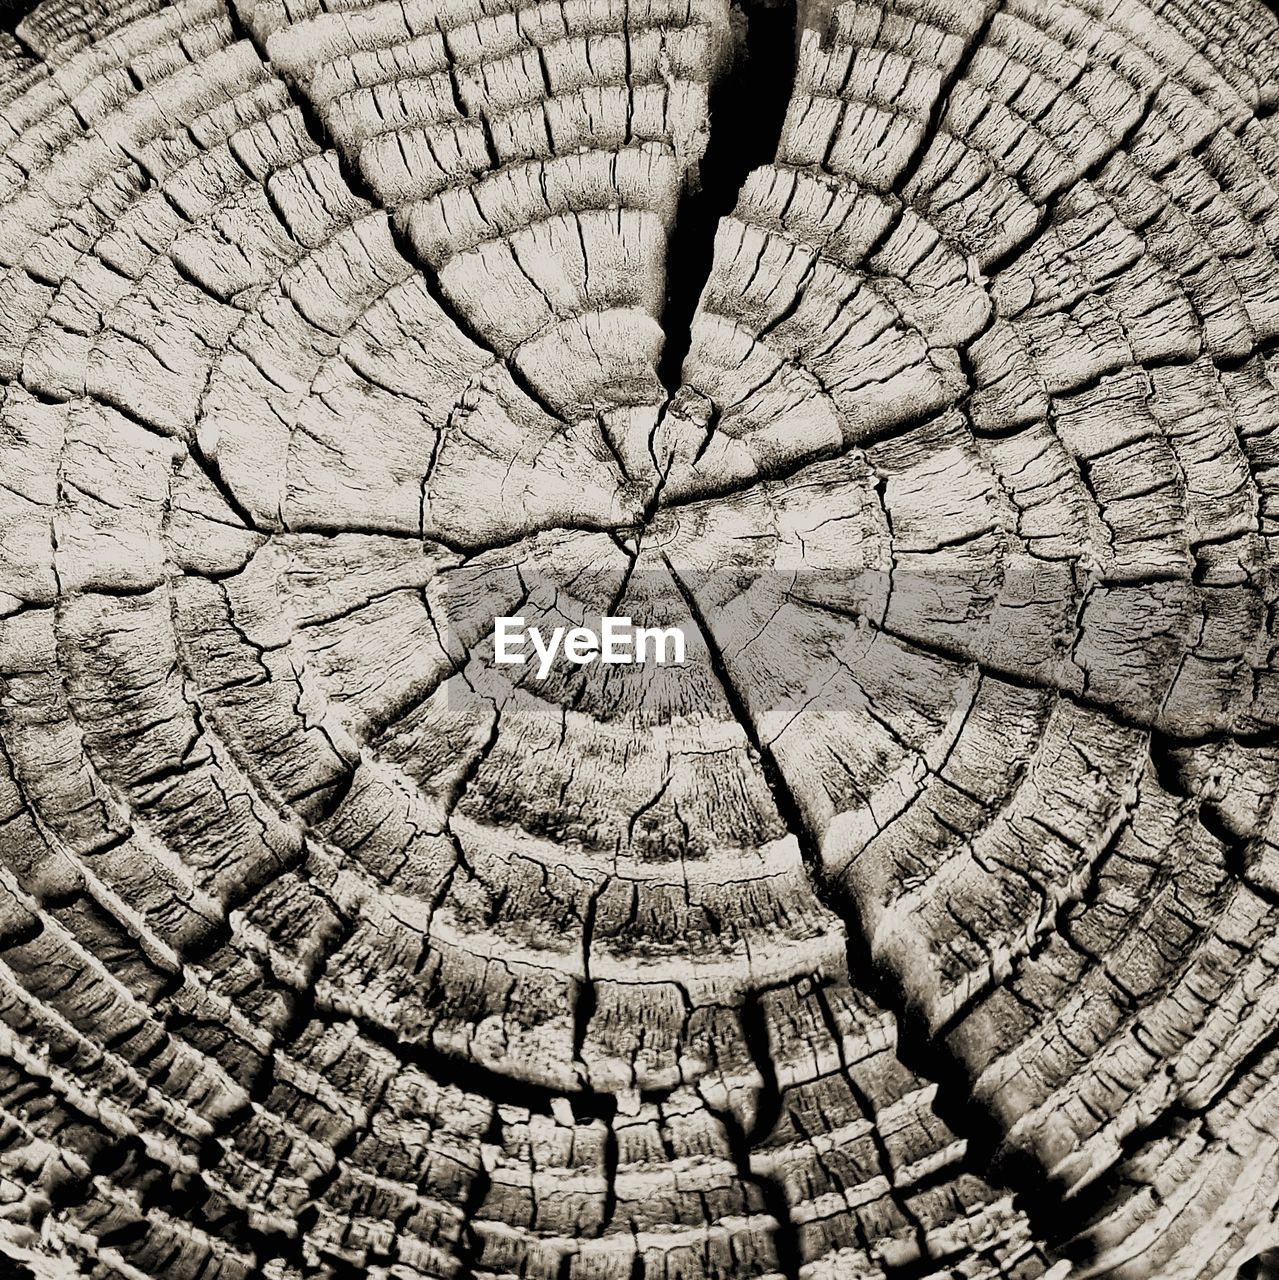 backgrounds, full frame, textured, bark, pattern, tree, tree stump, close-up, cracked, no people, nature, tree ring, natural pattern, cross section, day, wood - material, outdoors, plant, concentric, timber